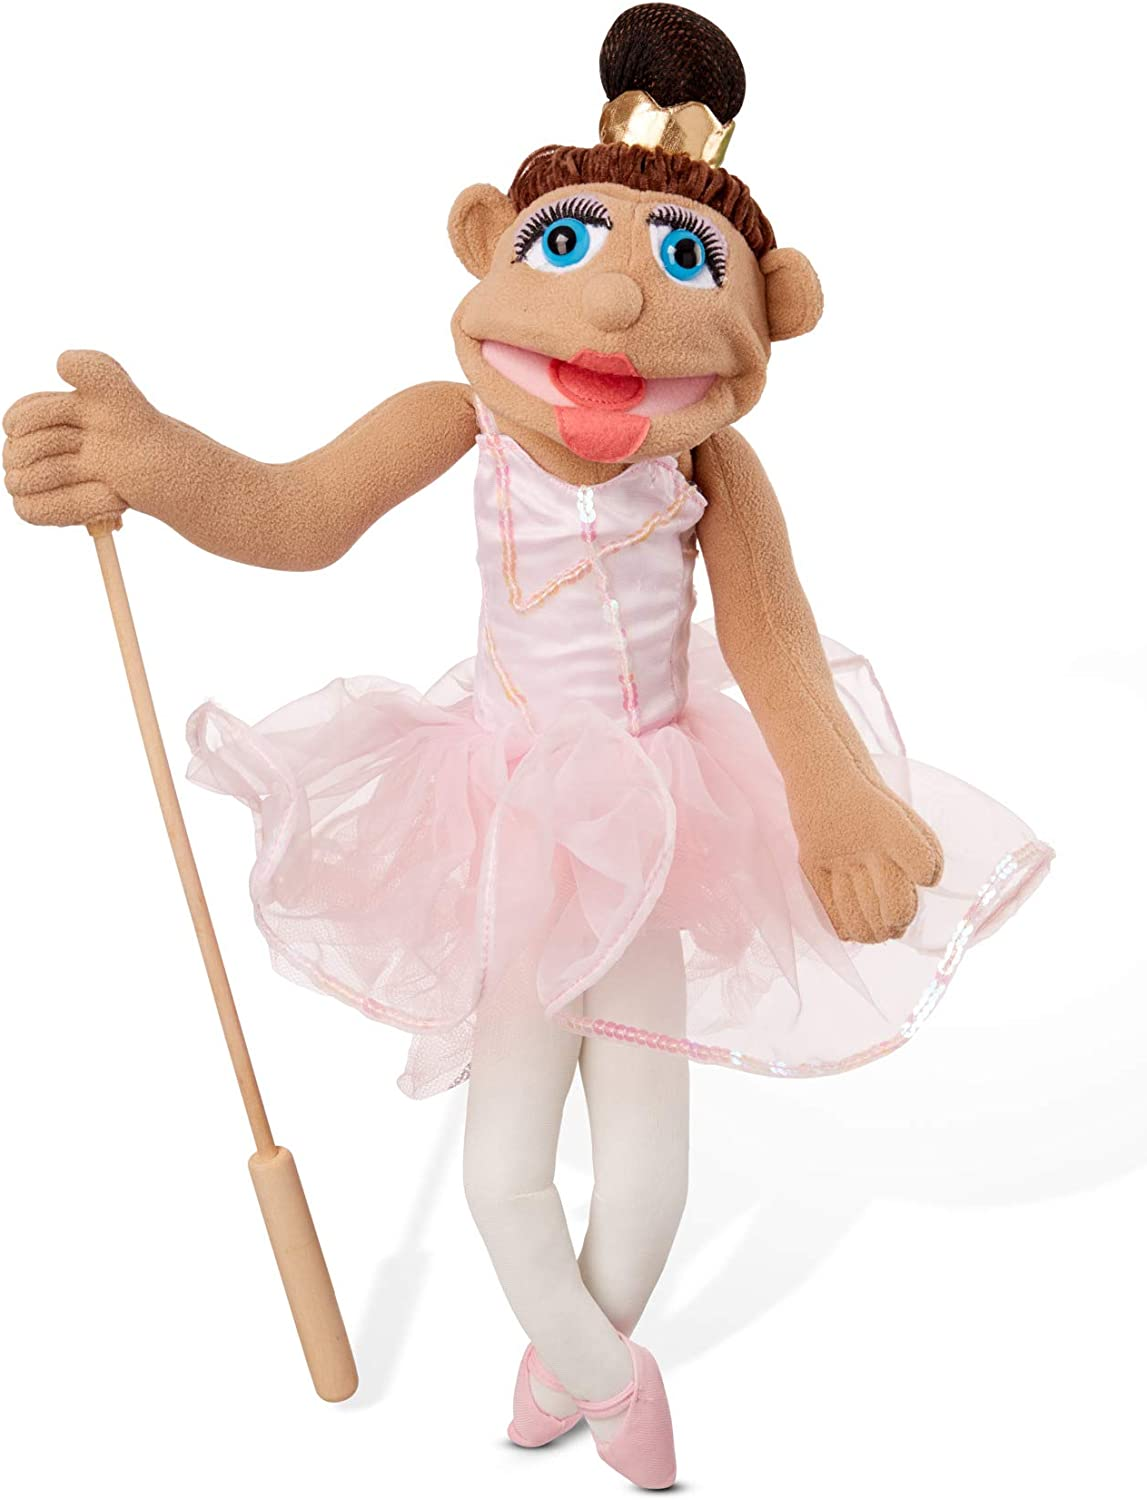 B07KBNHHTD Melissa & Doug Ballerina Puppet - Full-Body with Detachable Wooden Rod for Animated Gestures 61UqKgsXZhL